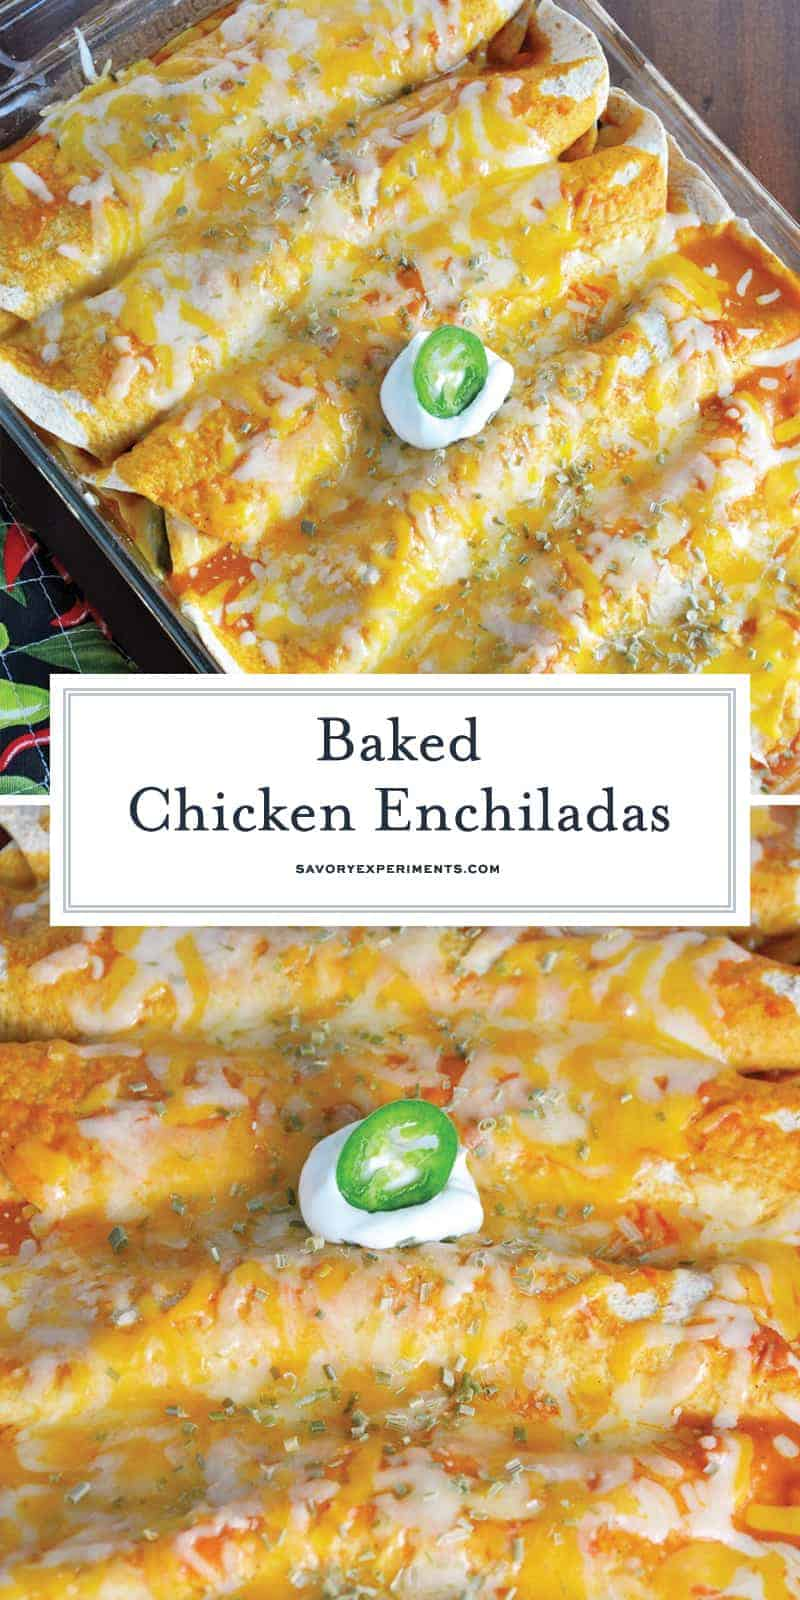 Baked Chicken Enchiladas for Pinterest